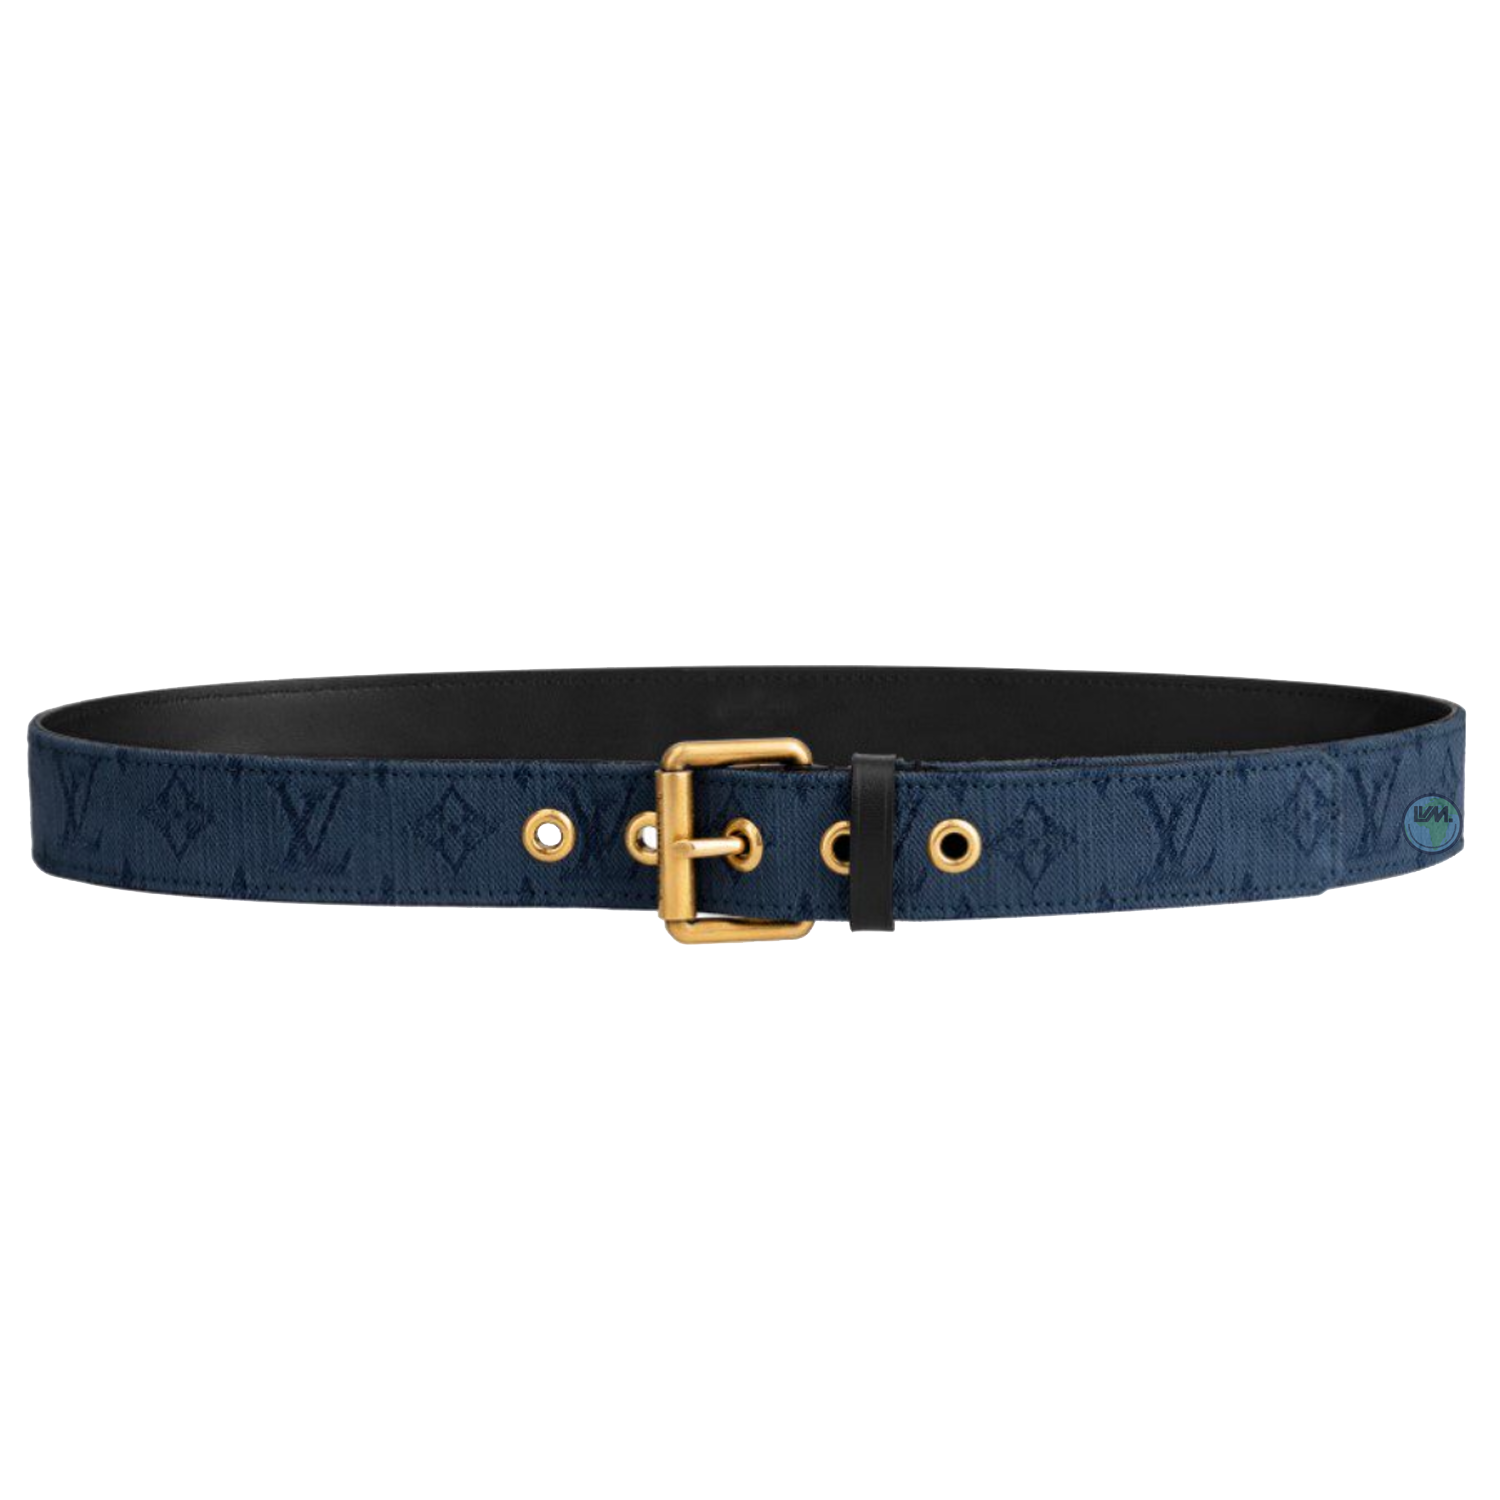 signature 35mm - €485 $715m0175monogram denim navy